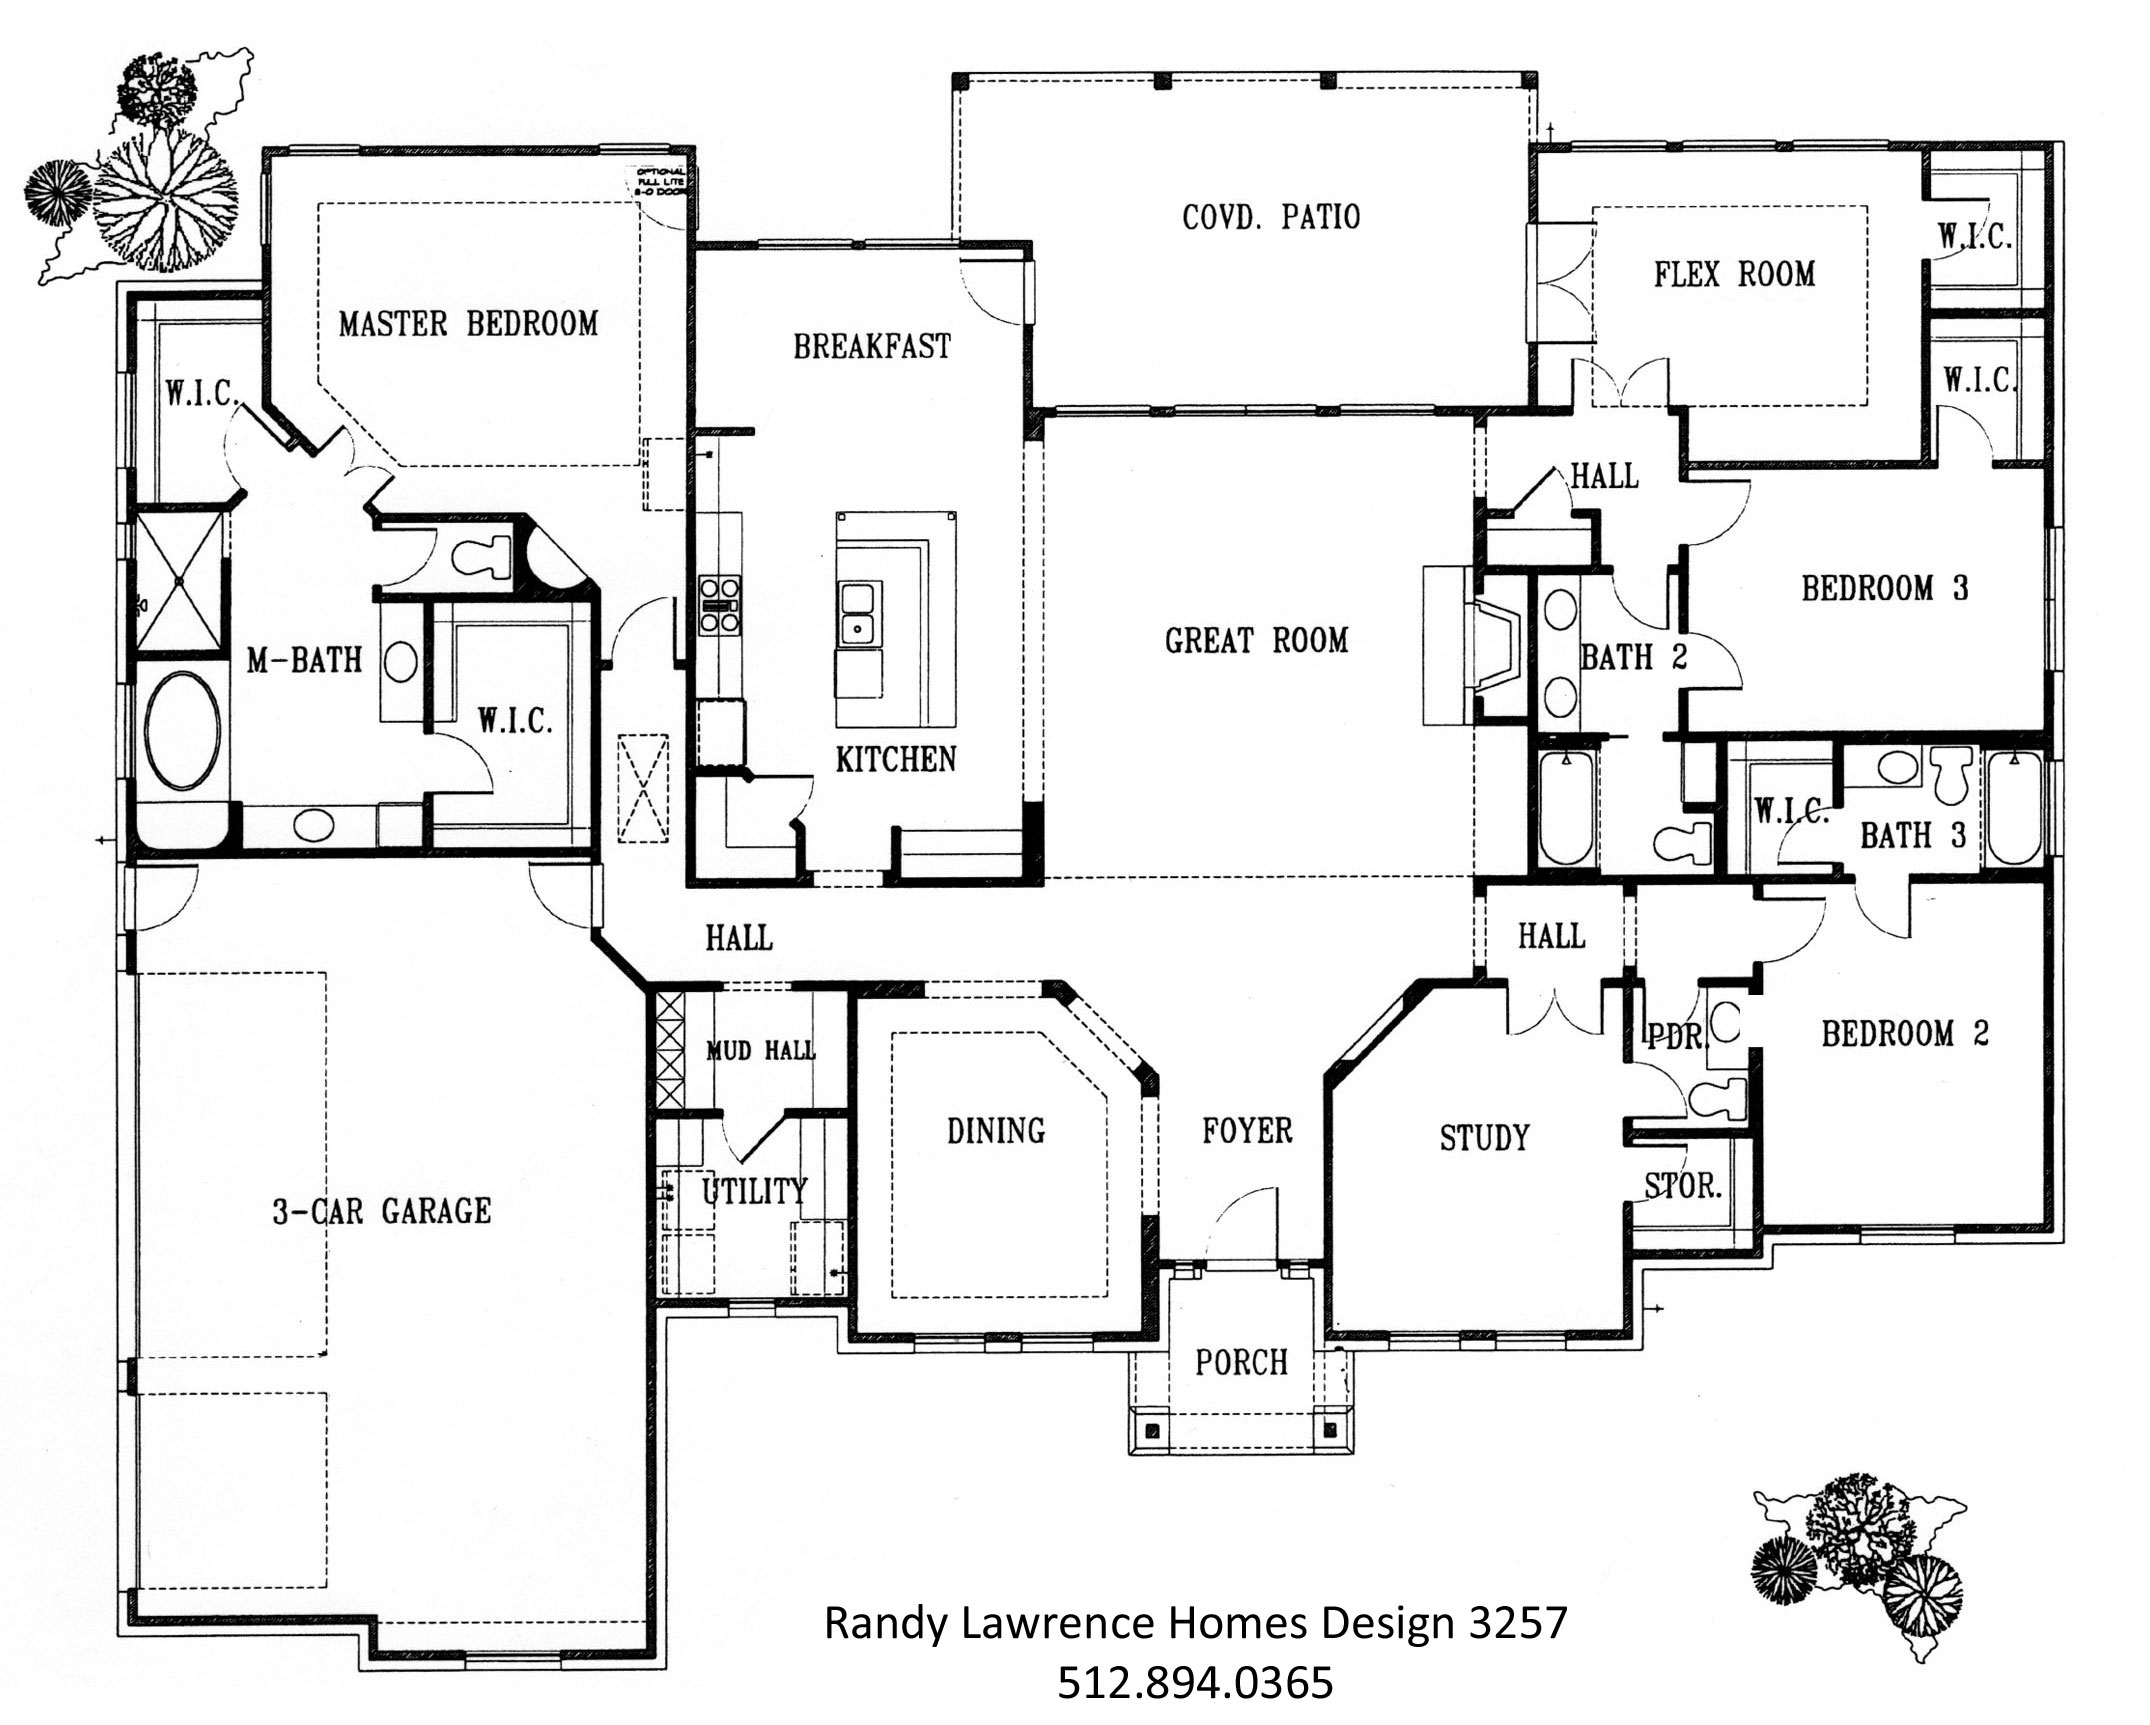 exceptional blueprints for existing homes #3: floor plans saddle river famous television show home floor plans